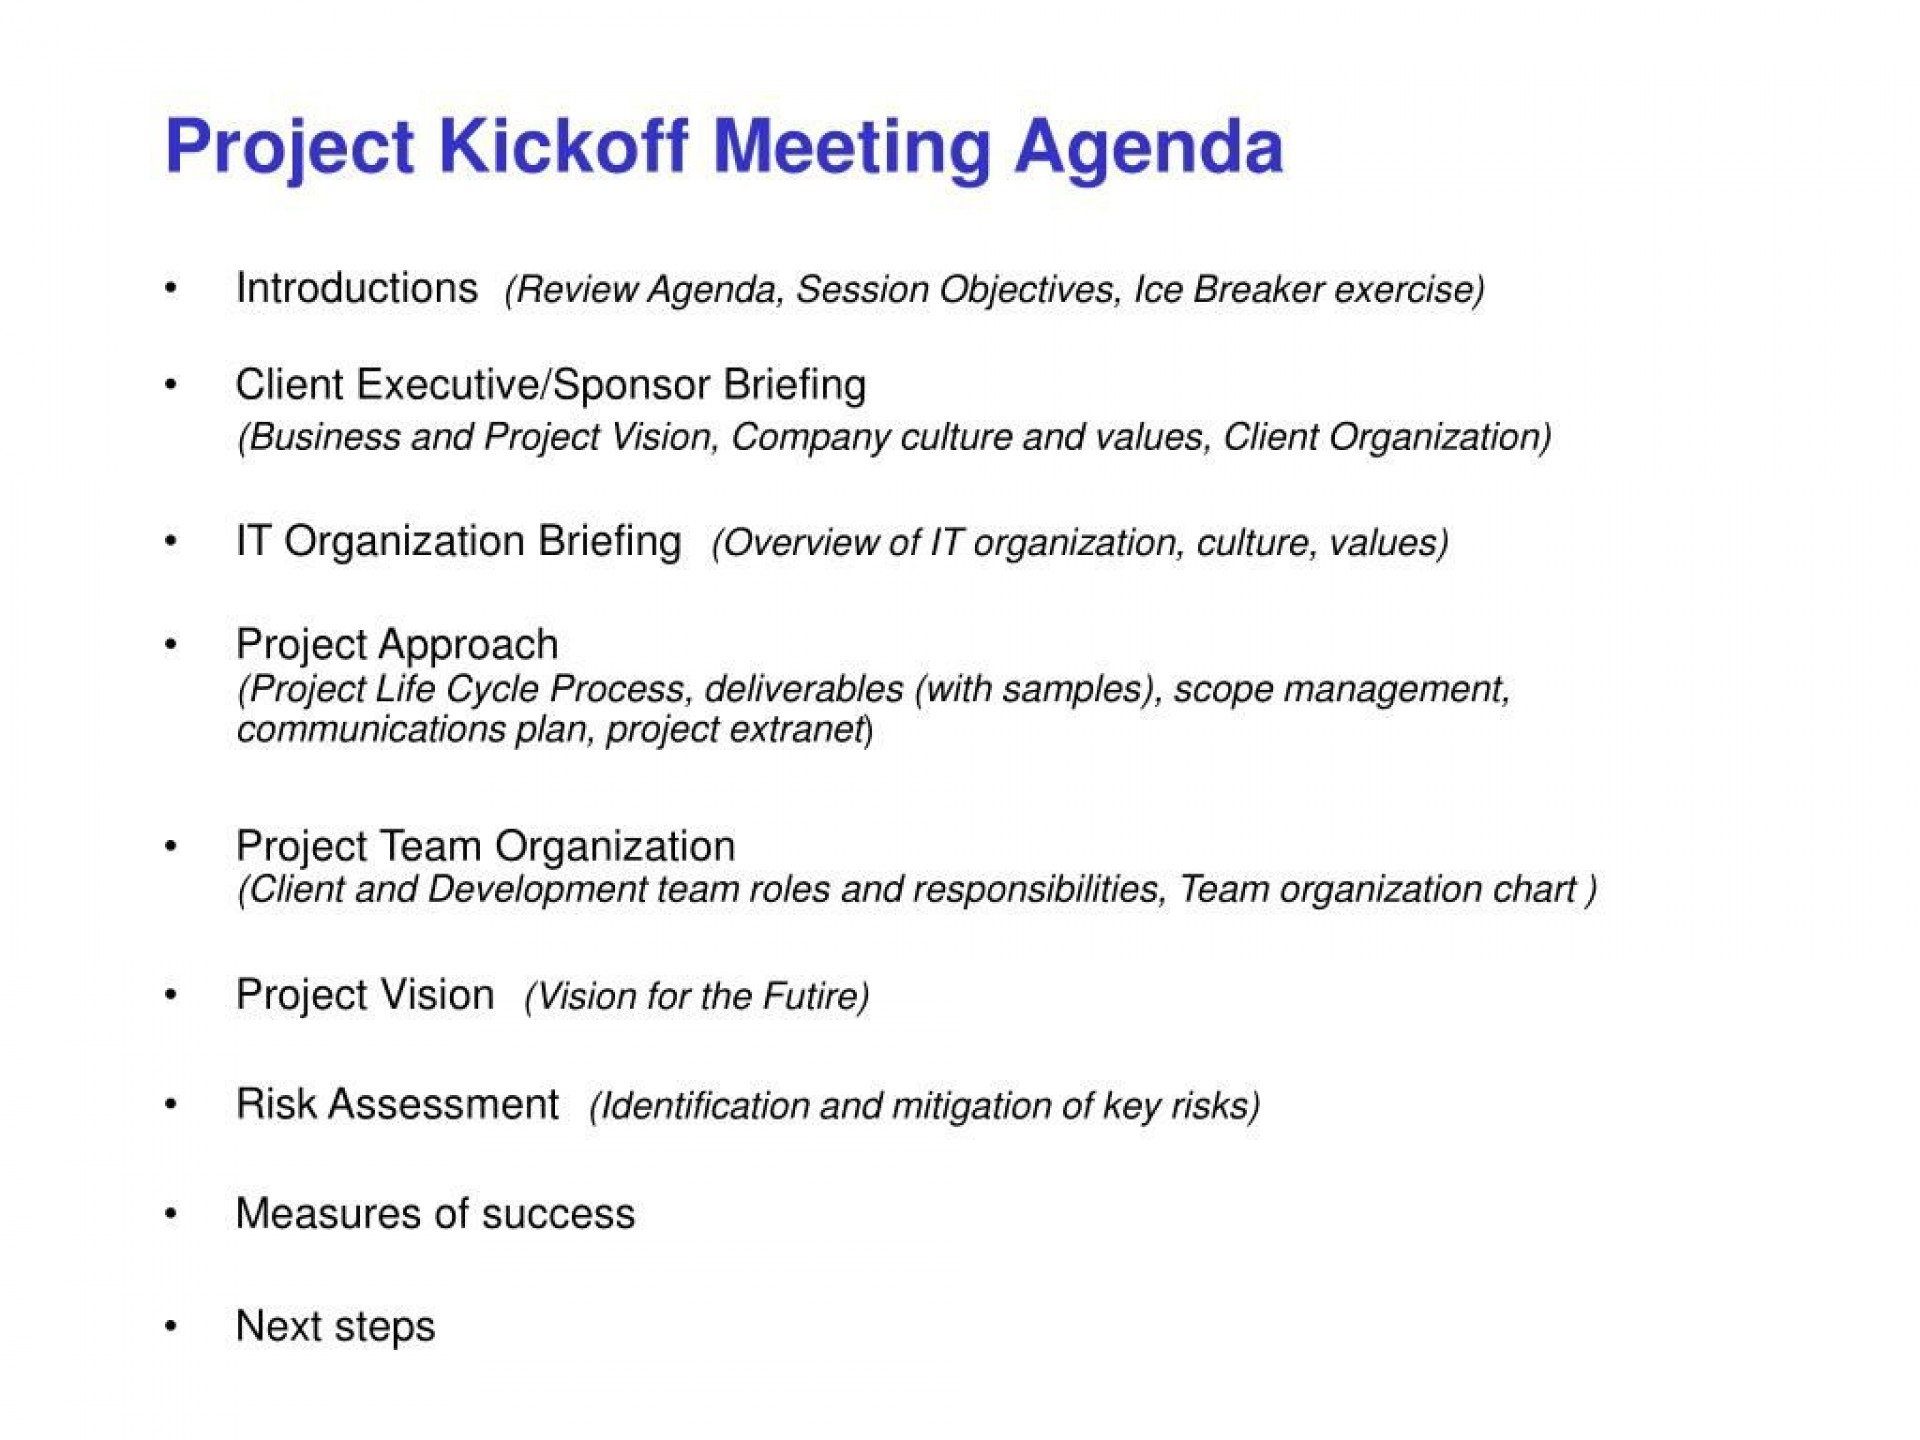 007 Excellent Project Kickoff Meeting Email Template Image  Kick Off1920